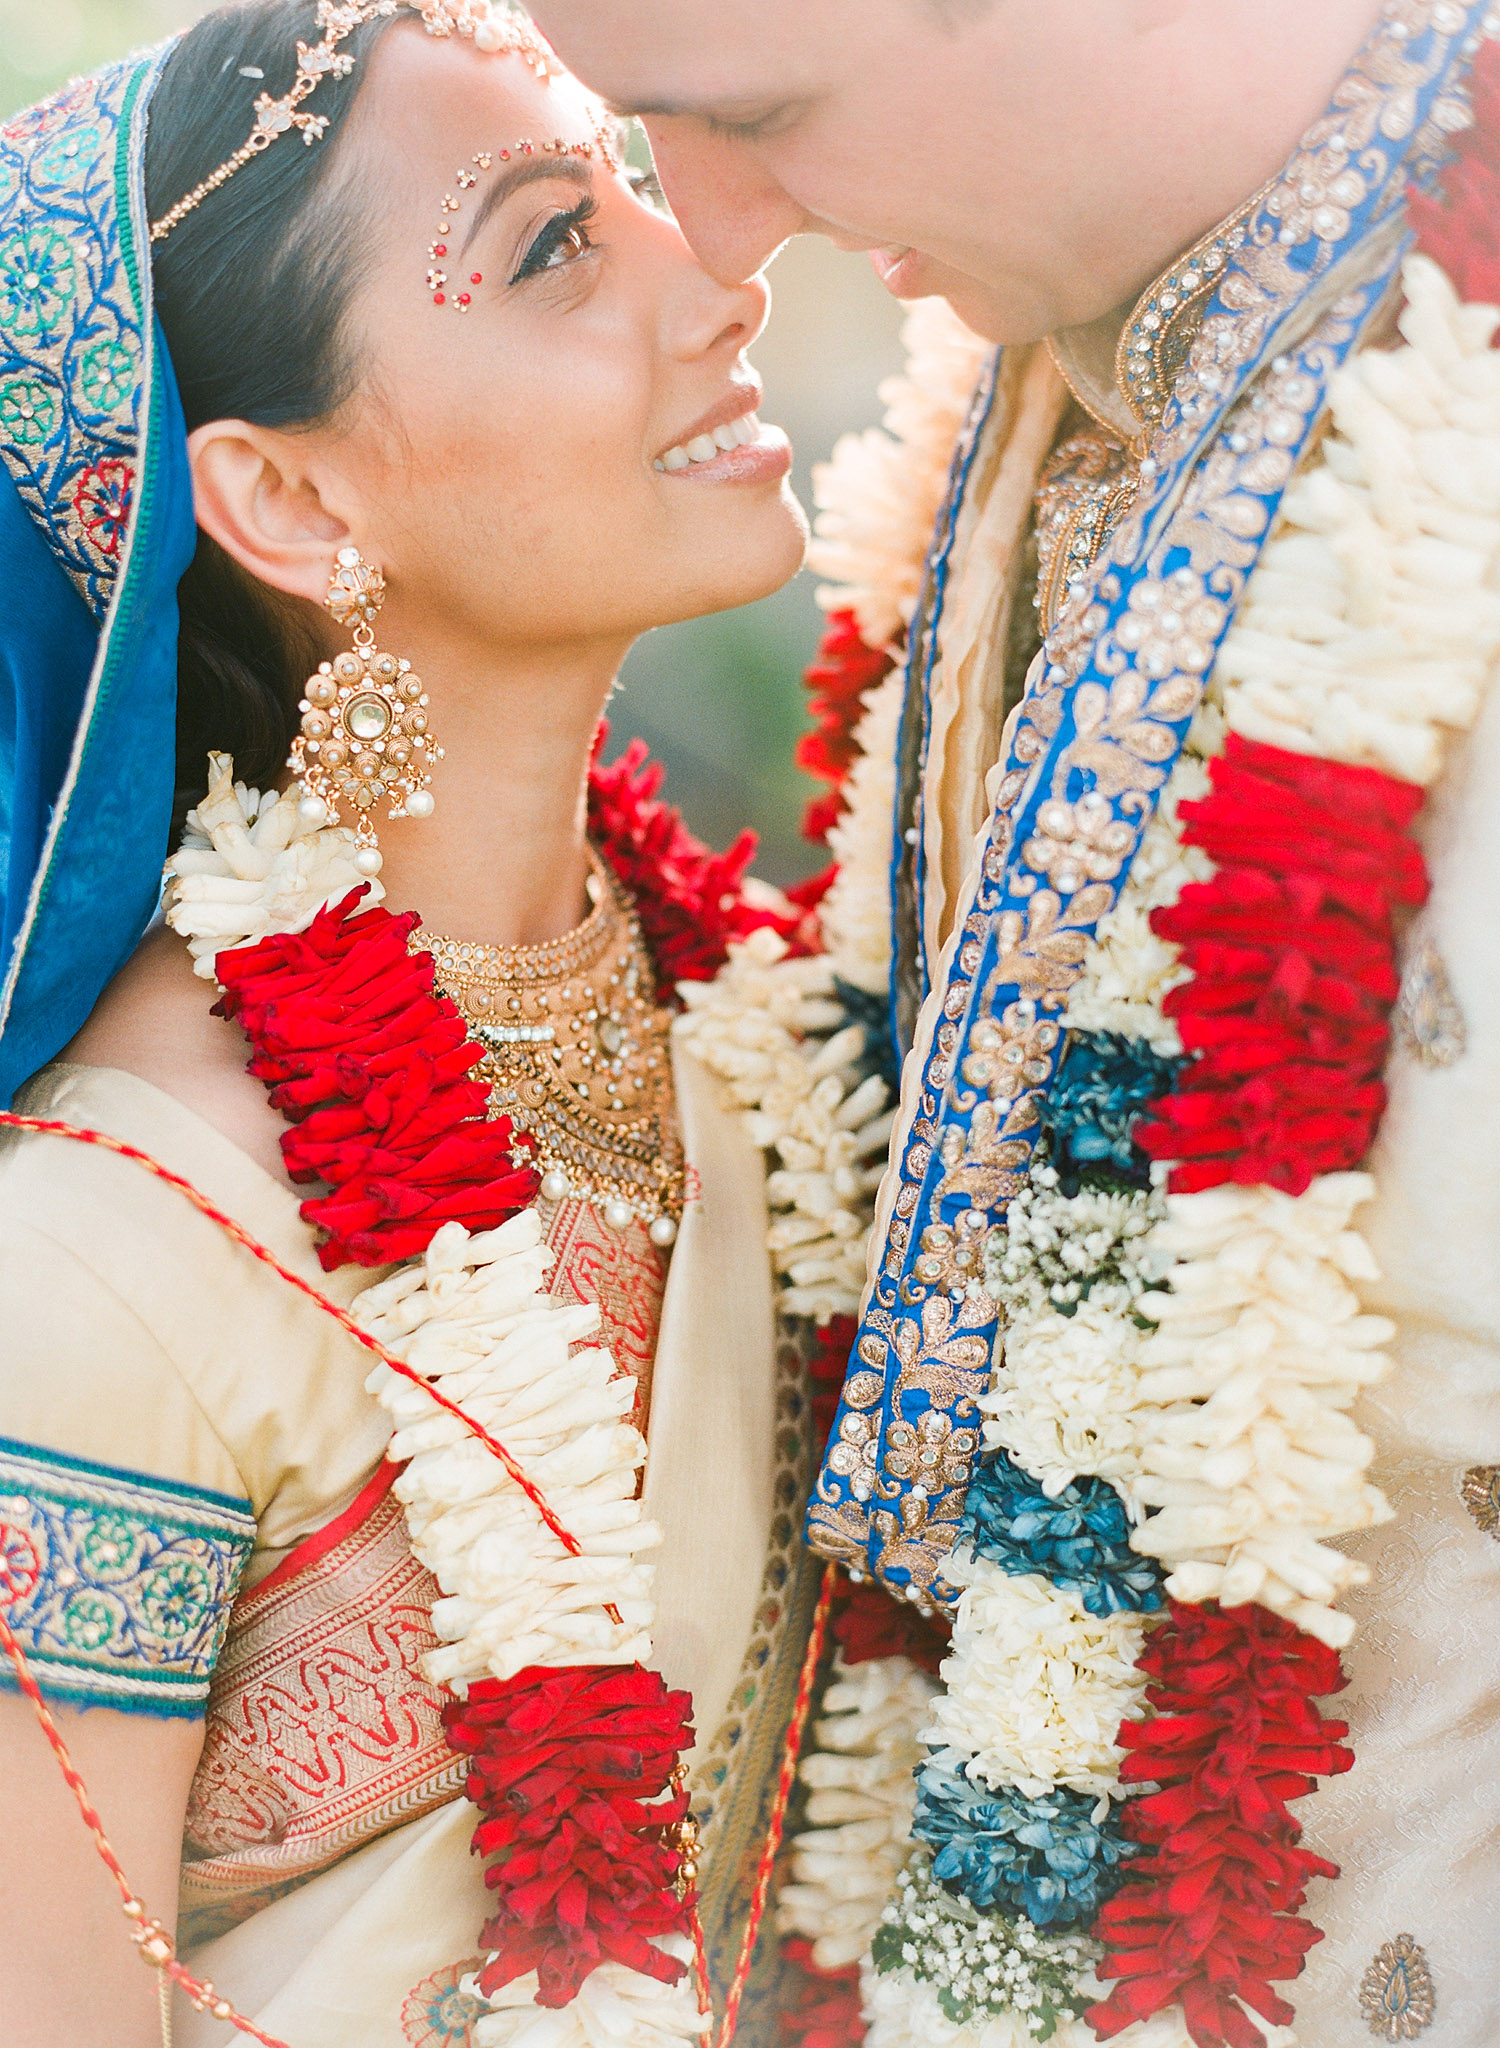 bride and groom after the ceremony at this Indian Wedding in Florida photographed by Destination Wedding Photographer, LExia Frank - a top indian wedding photographer - who shoots film for luxury indian weddings preferring the soft skin tones and vibrant colors for indian weddings in india and worldwide